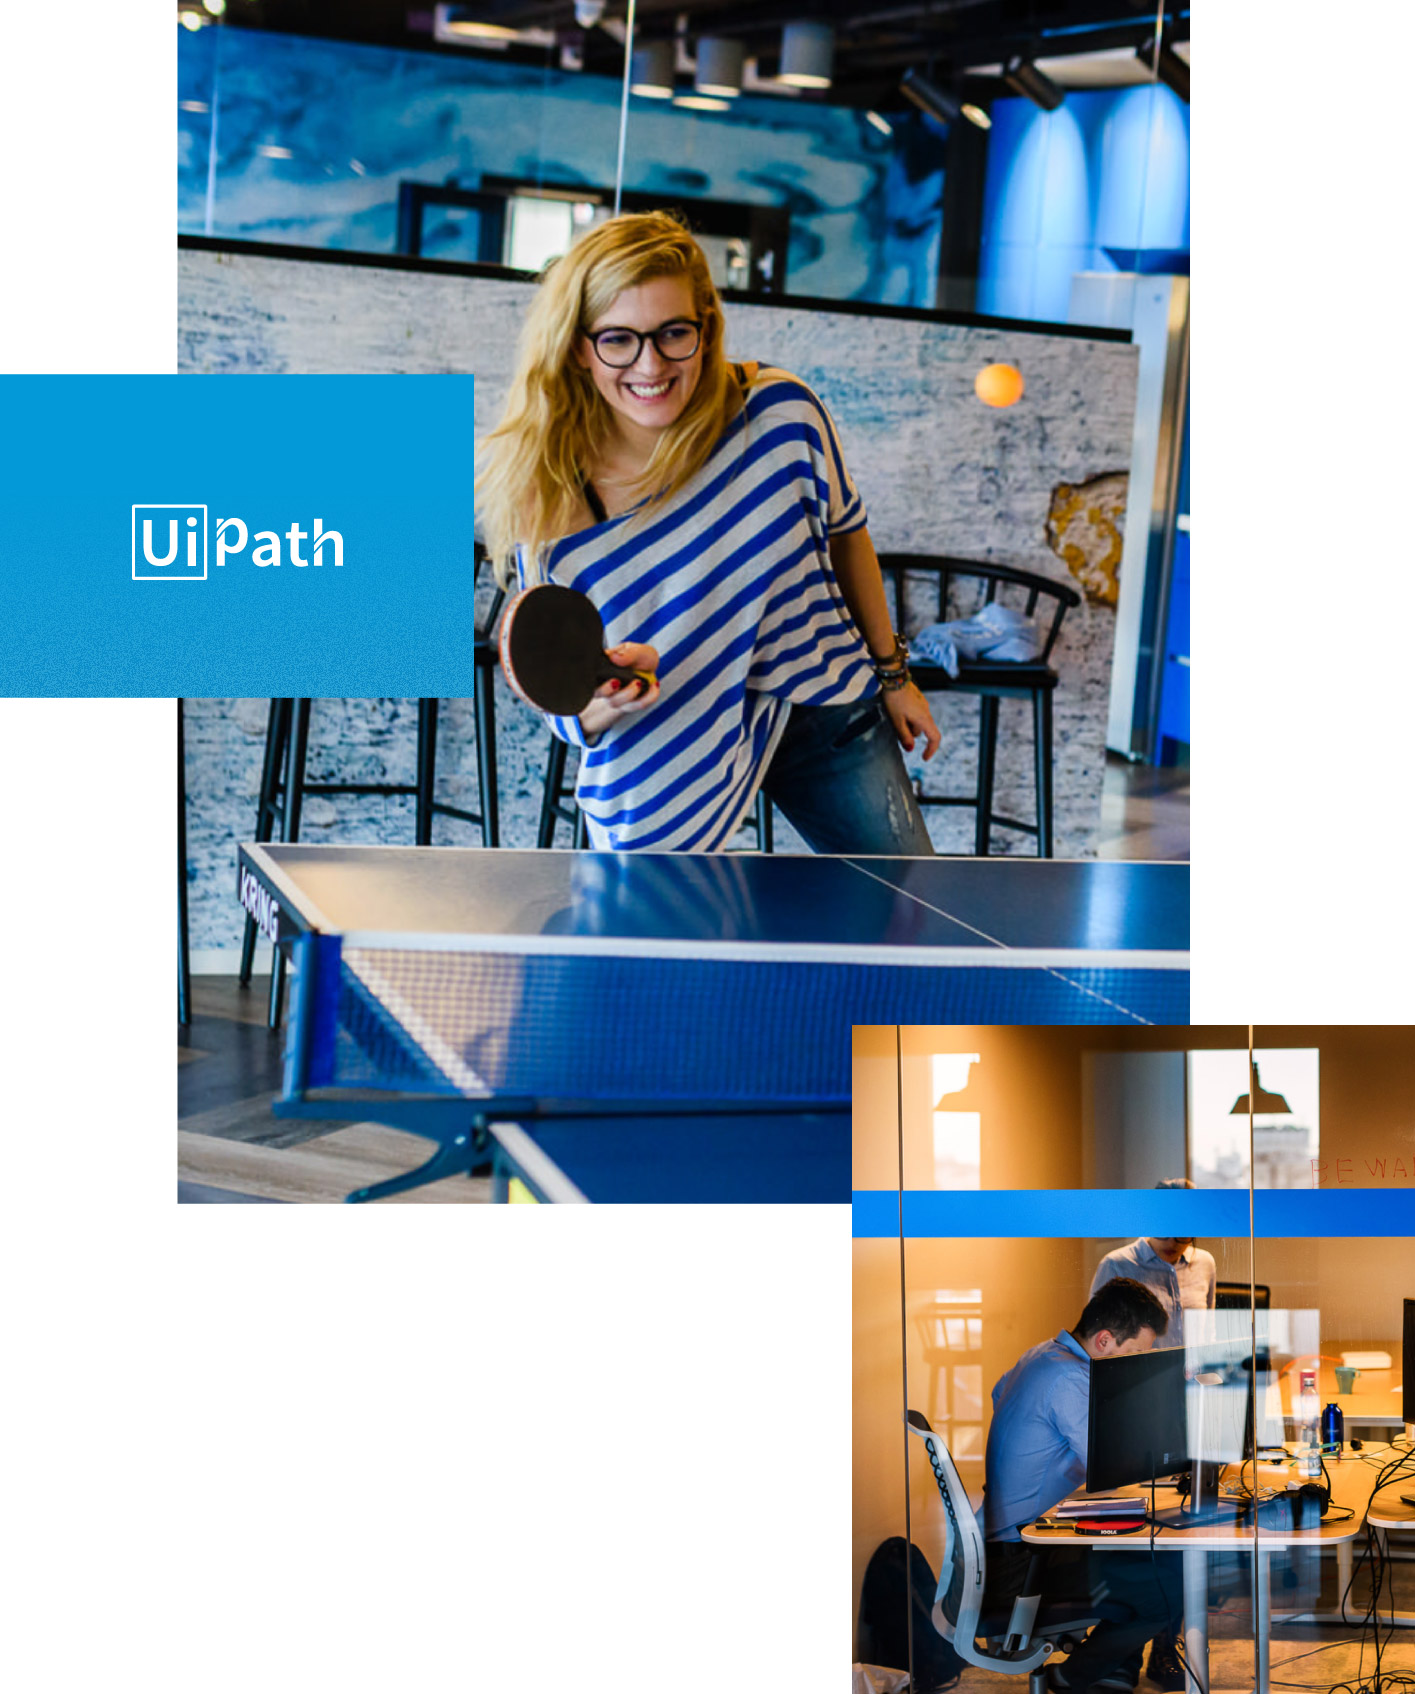 UiPath-Recruitment